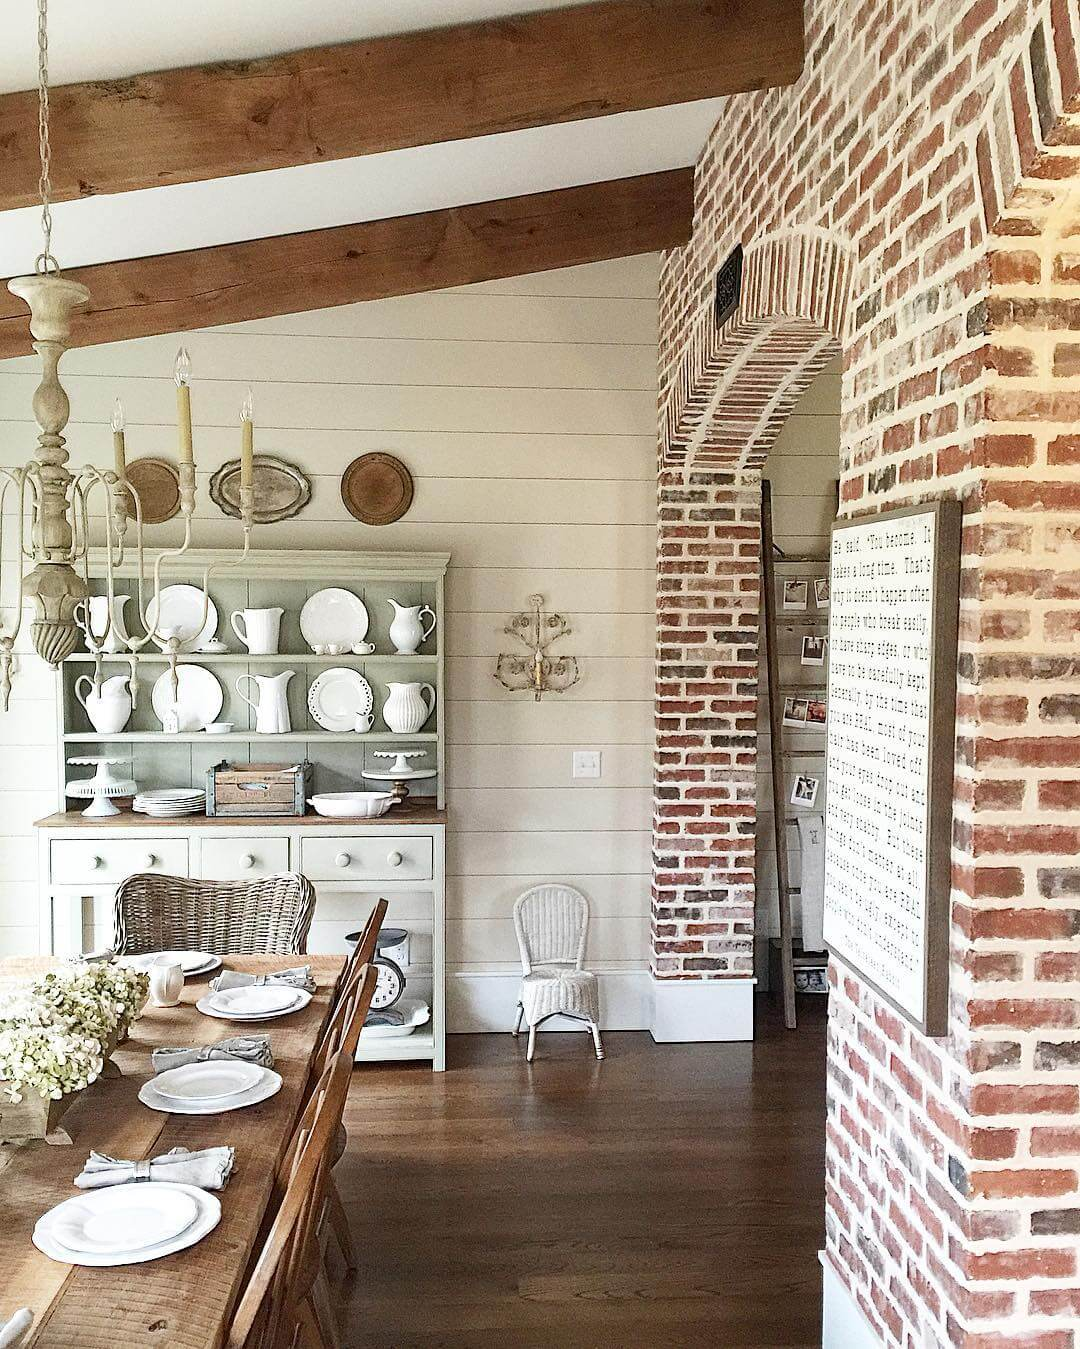 Exposed Beams, White Porcelain, and Upcycled Lighting